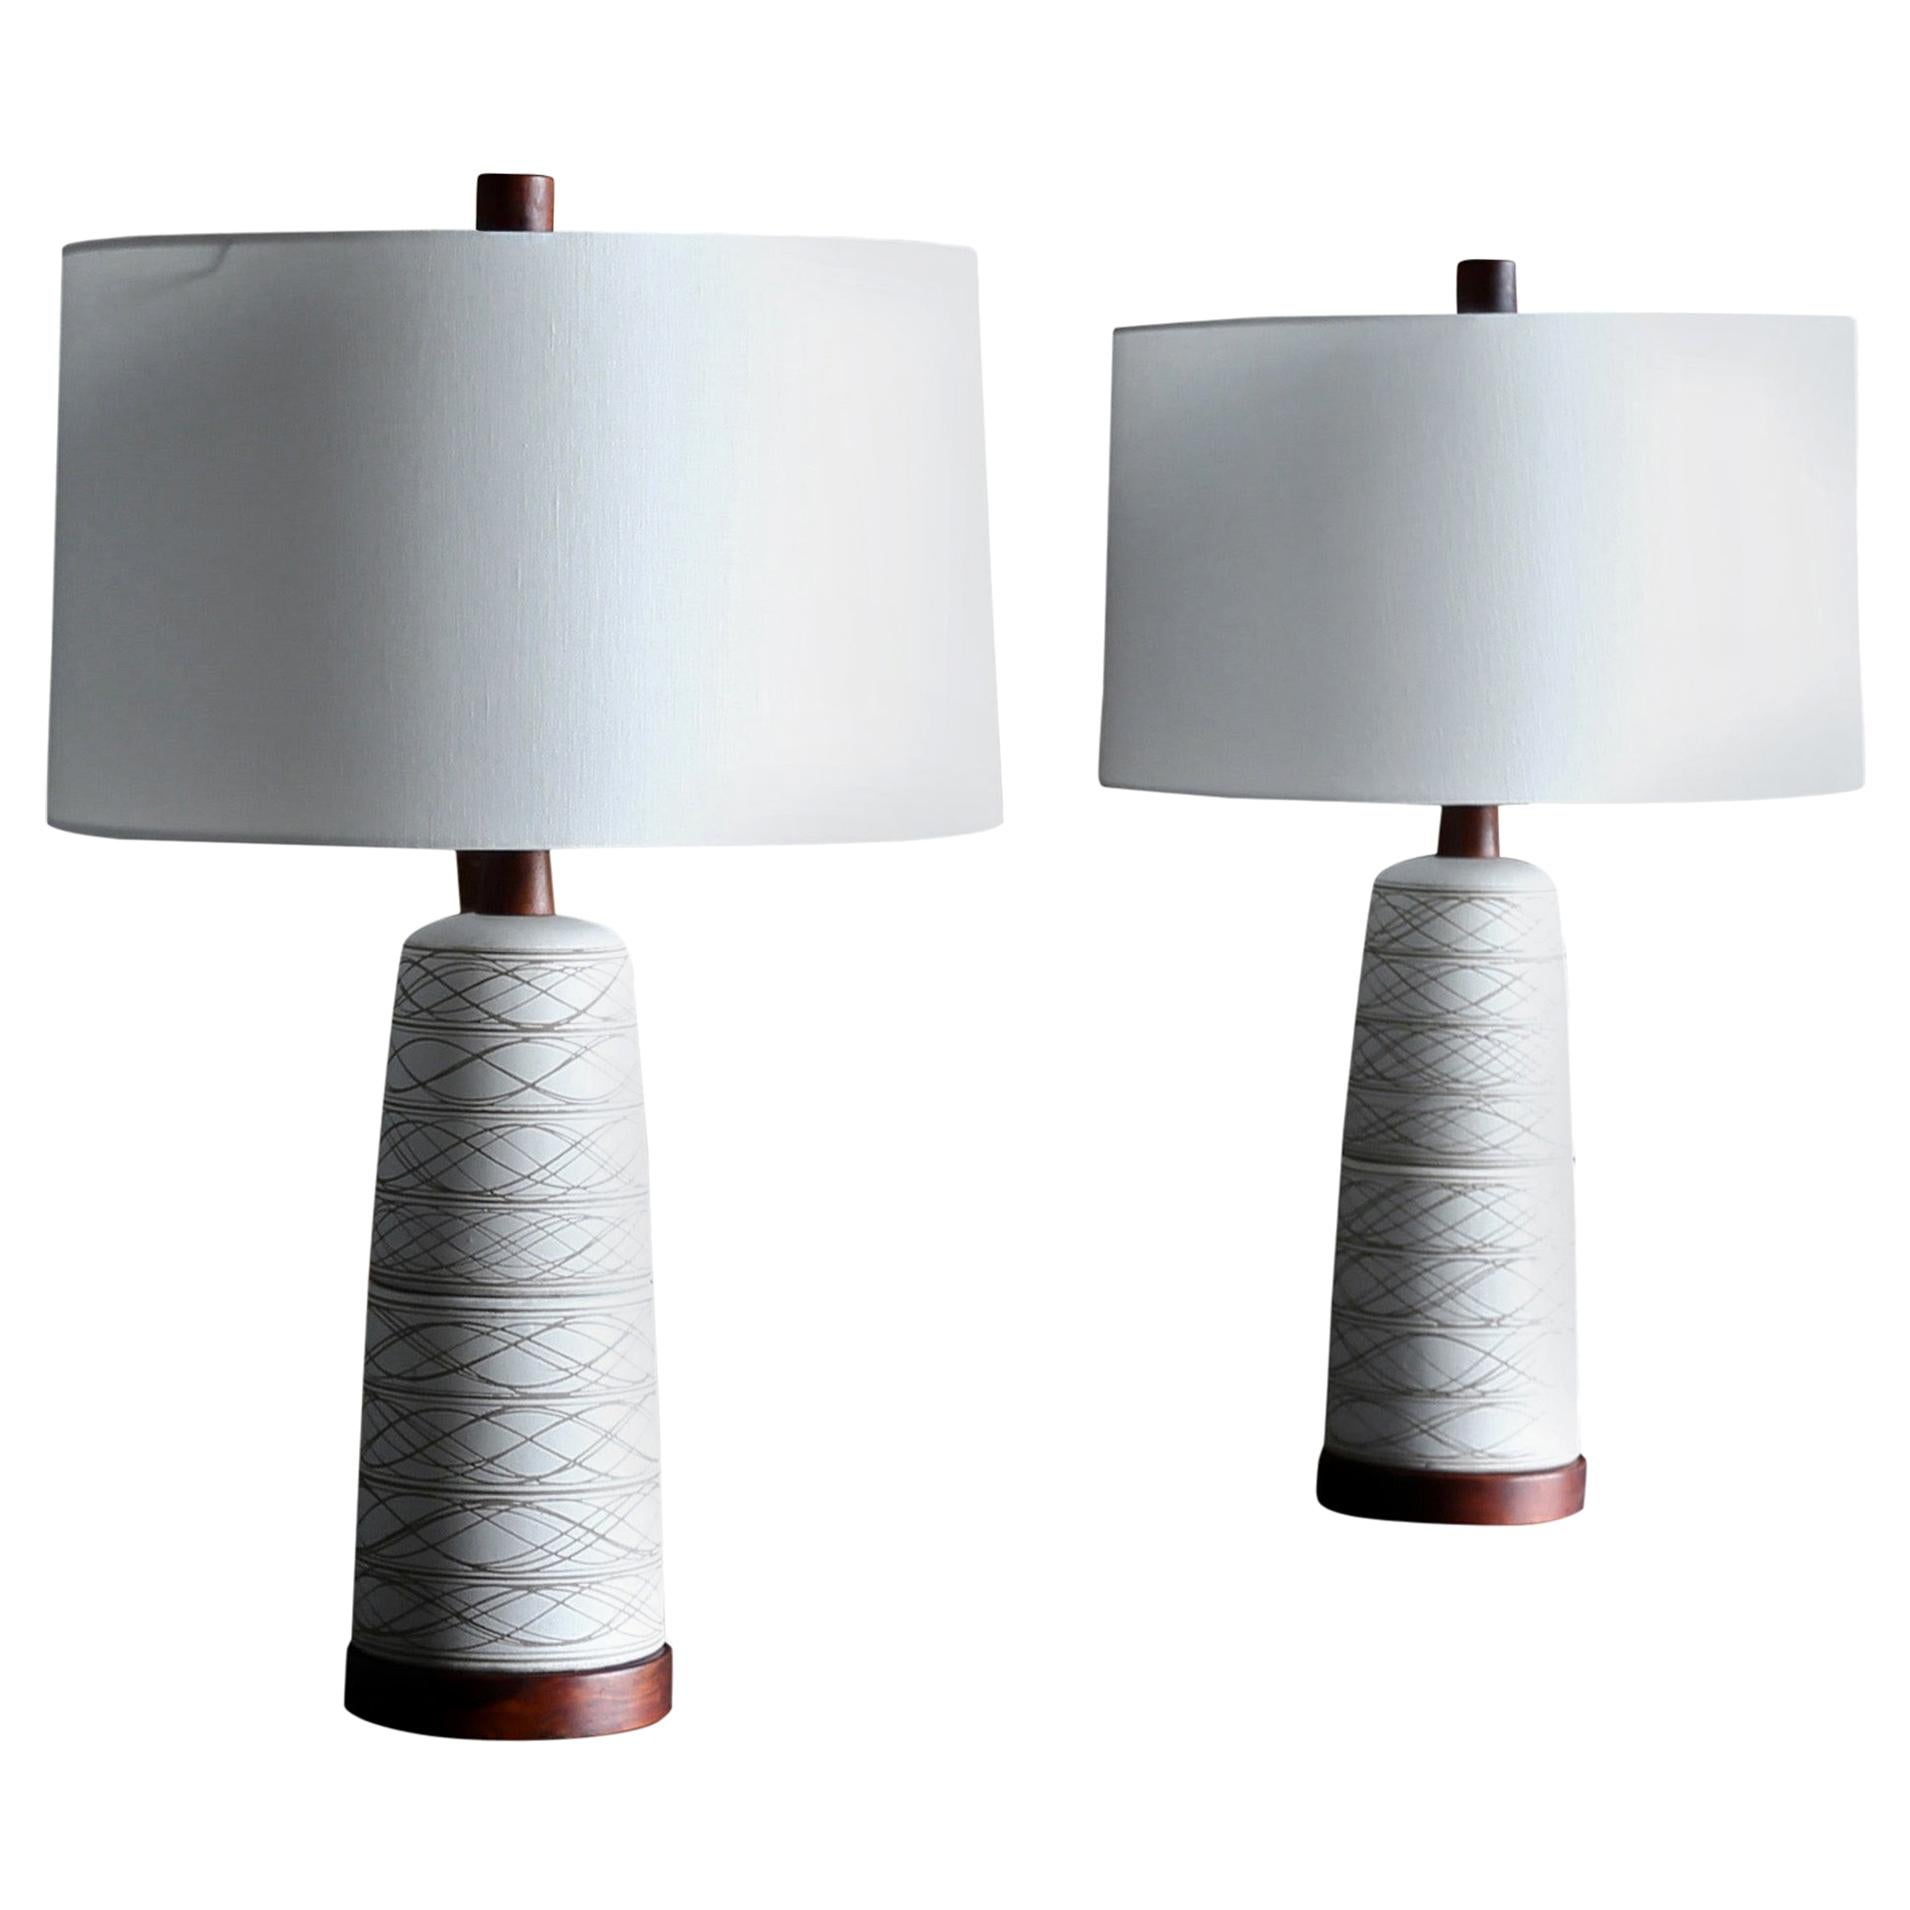 Jane and Gordon Martz Ceramic Table Lamps for Marshall Studios, circa 1965